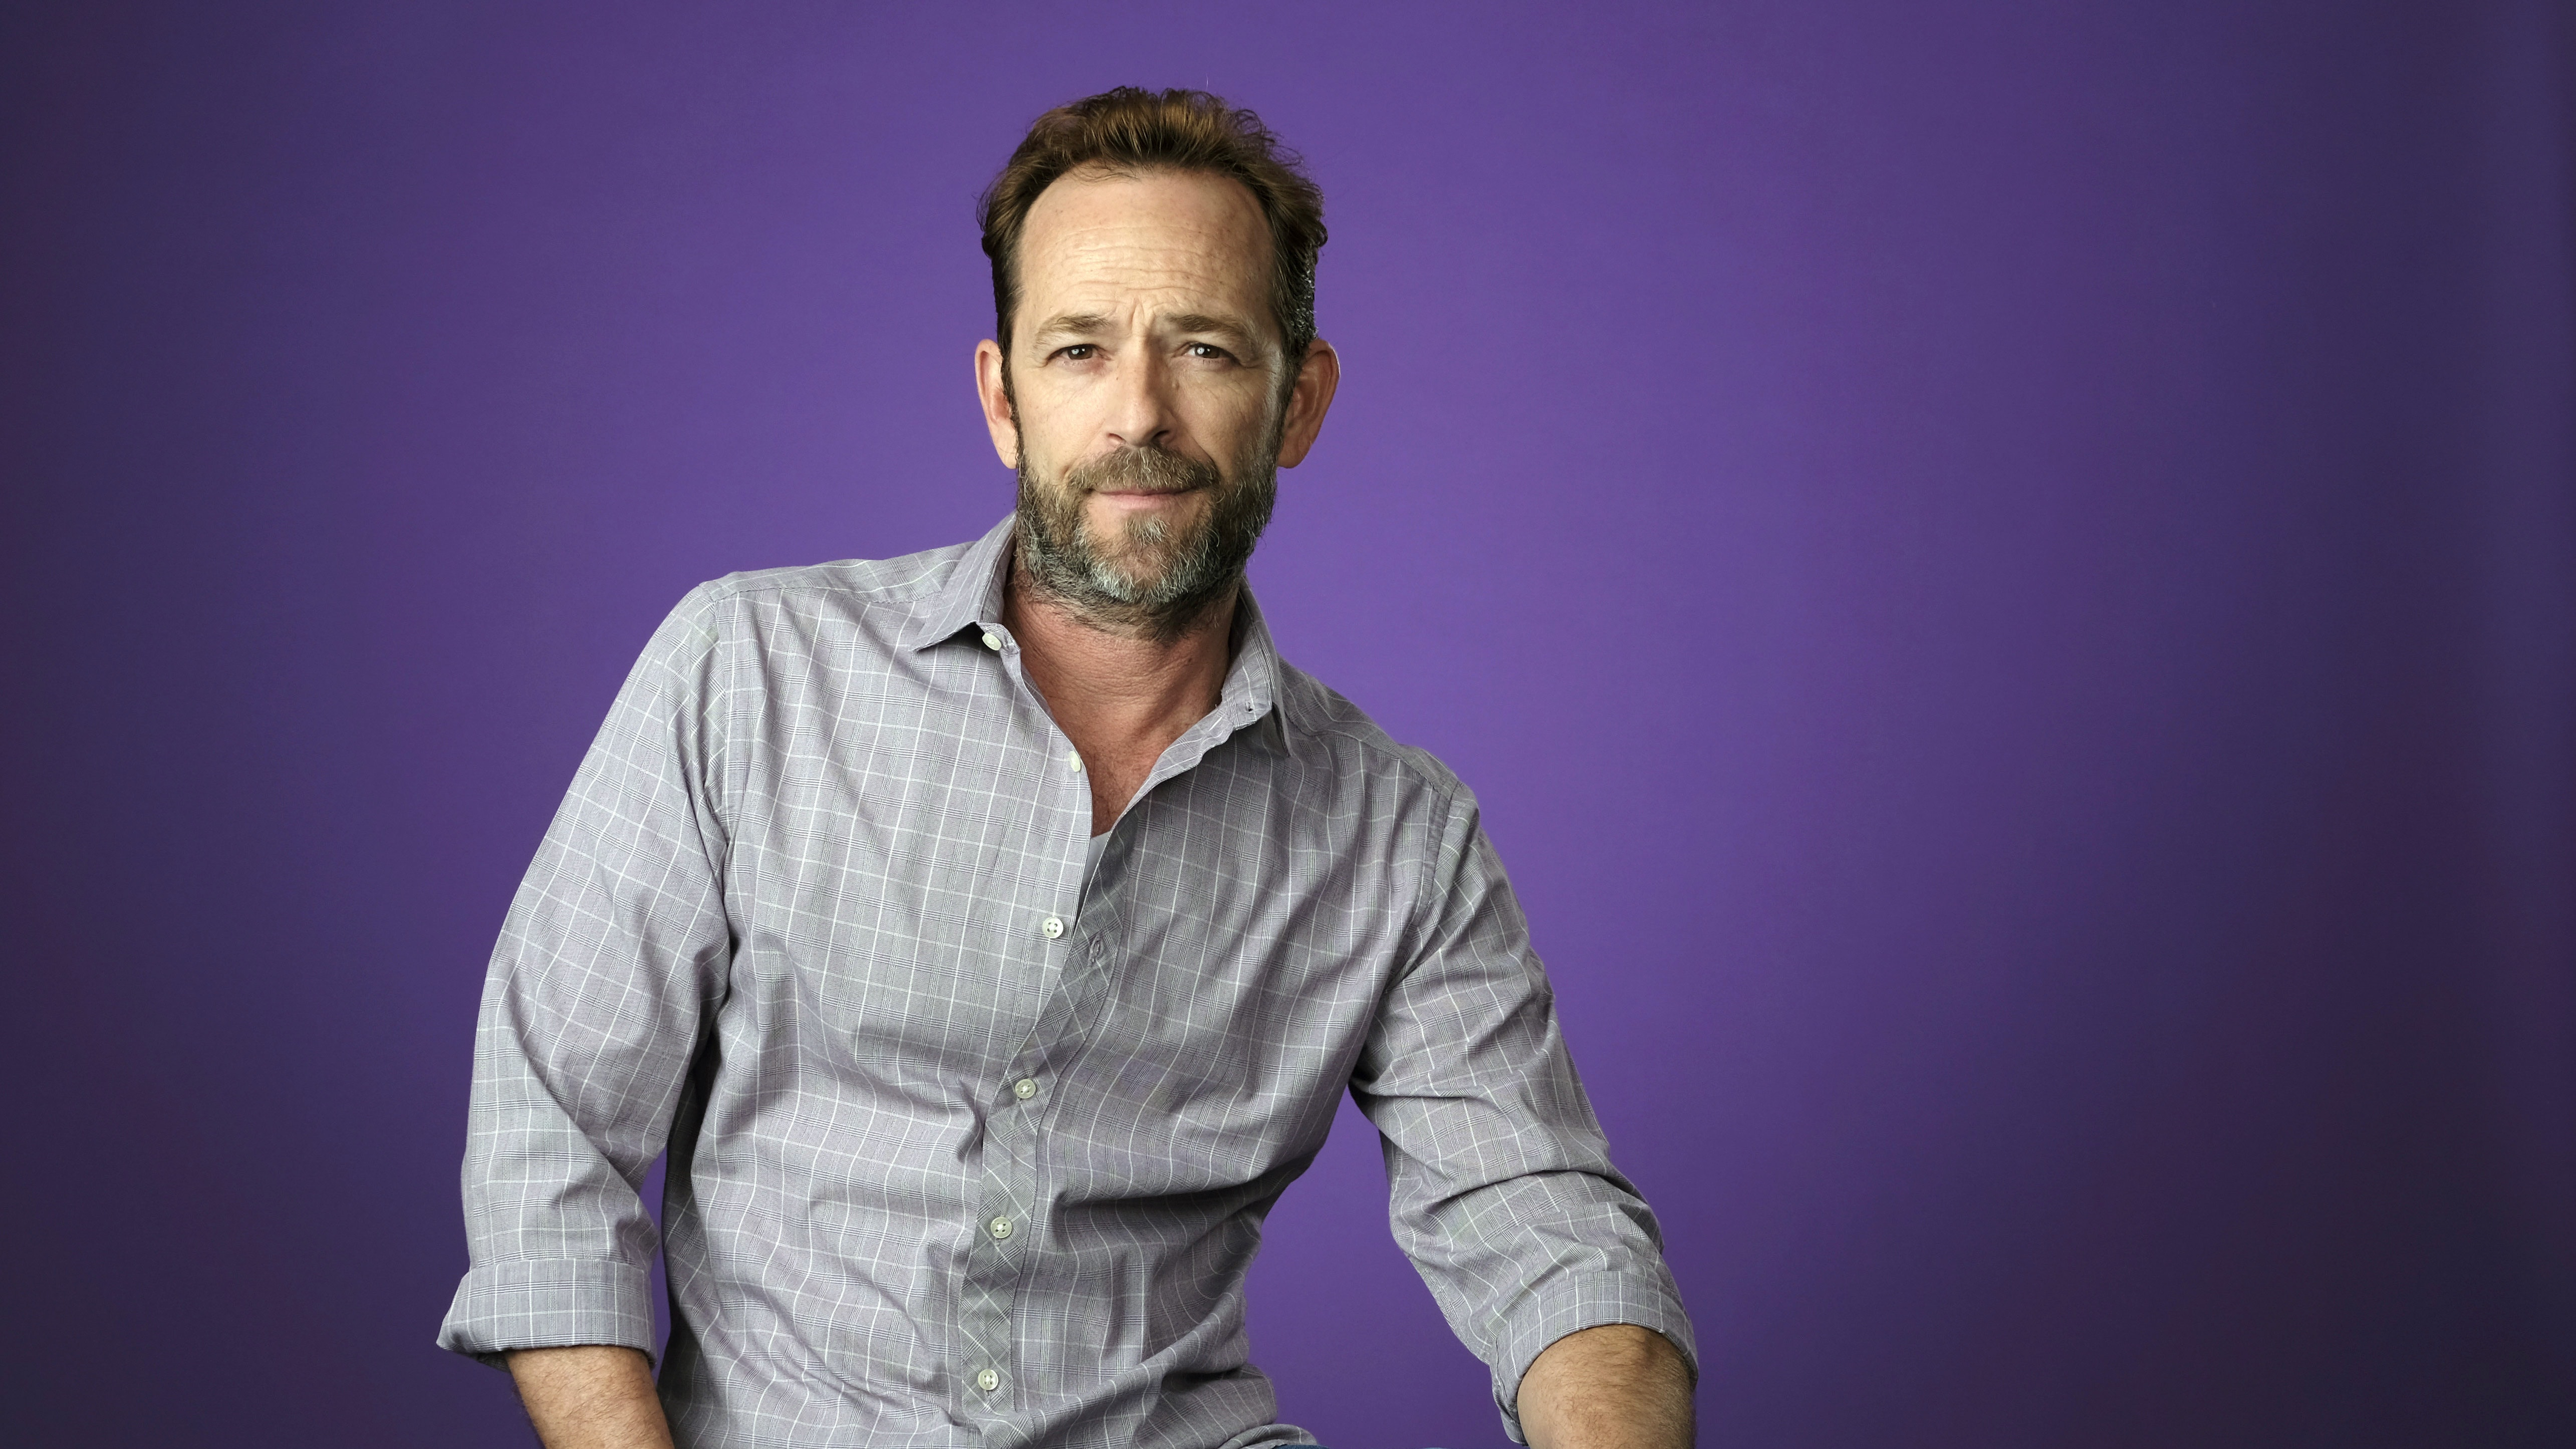 3dcc63711 Beverly Hills, 90210 star Shannen Doherty pays emotional tribute to Luke  Perry